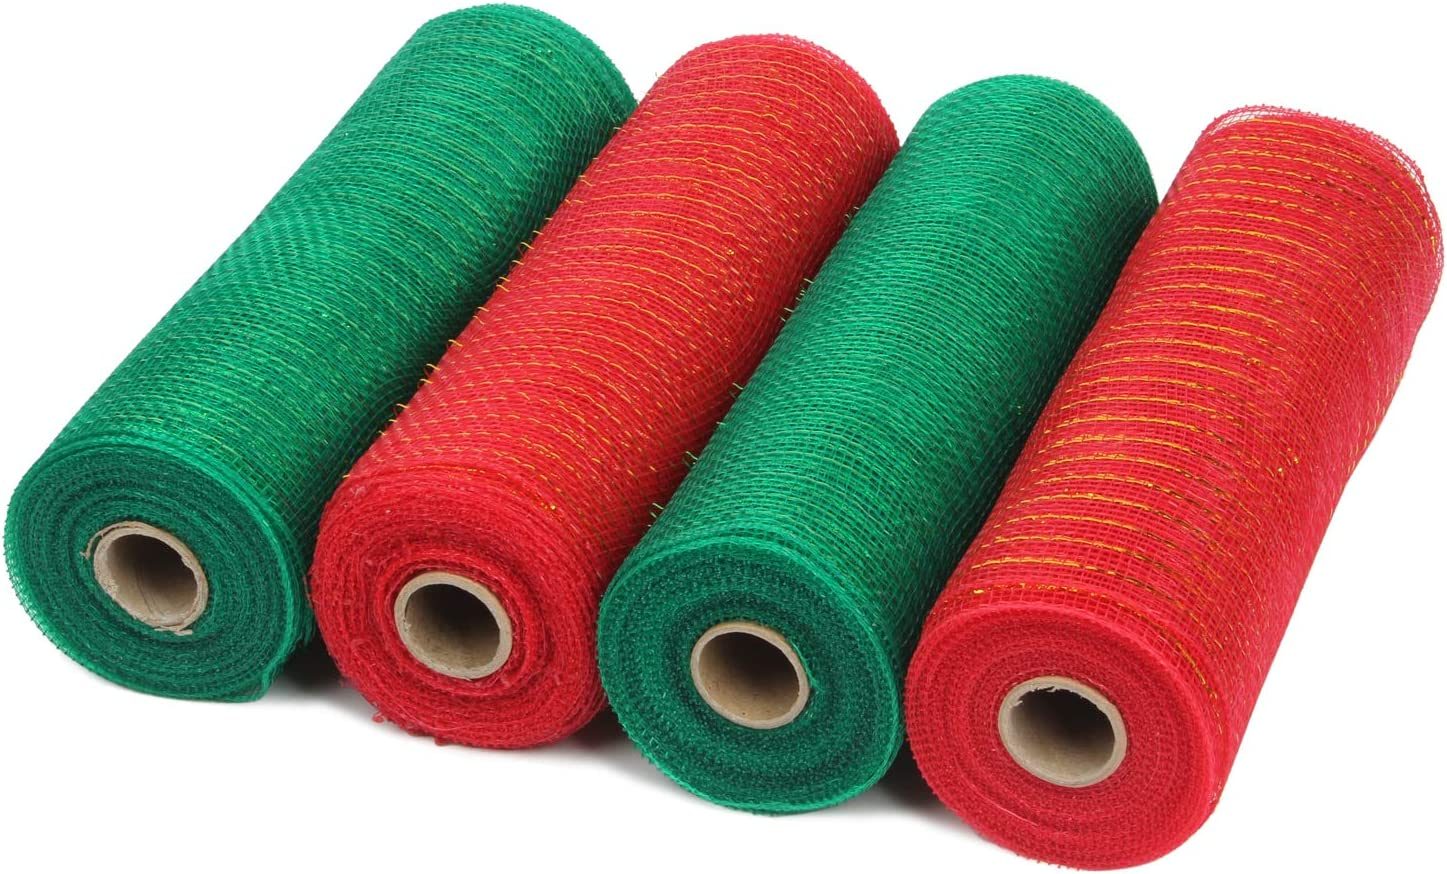 LaRibbons Deco Poly Mesh Ribbon - 10 inch x 30 feet Each Roll - Metallic Foil Red and Green Rolls for Wreaths, Swags and Decorating - 4 Pack